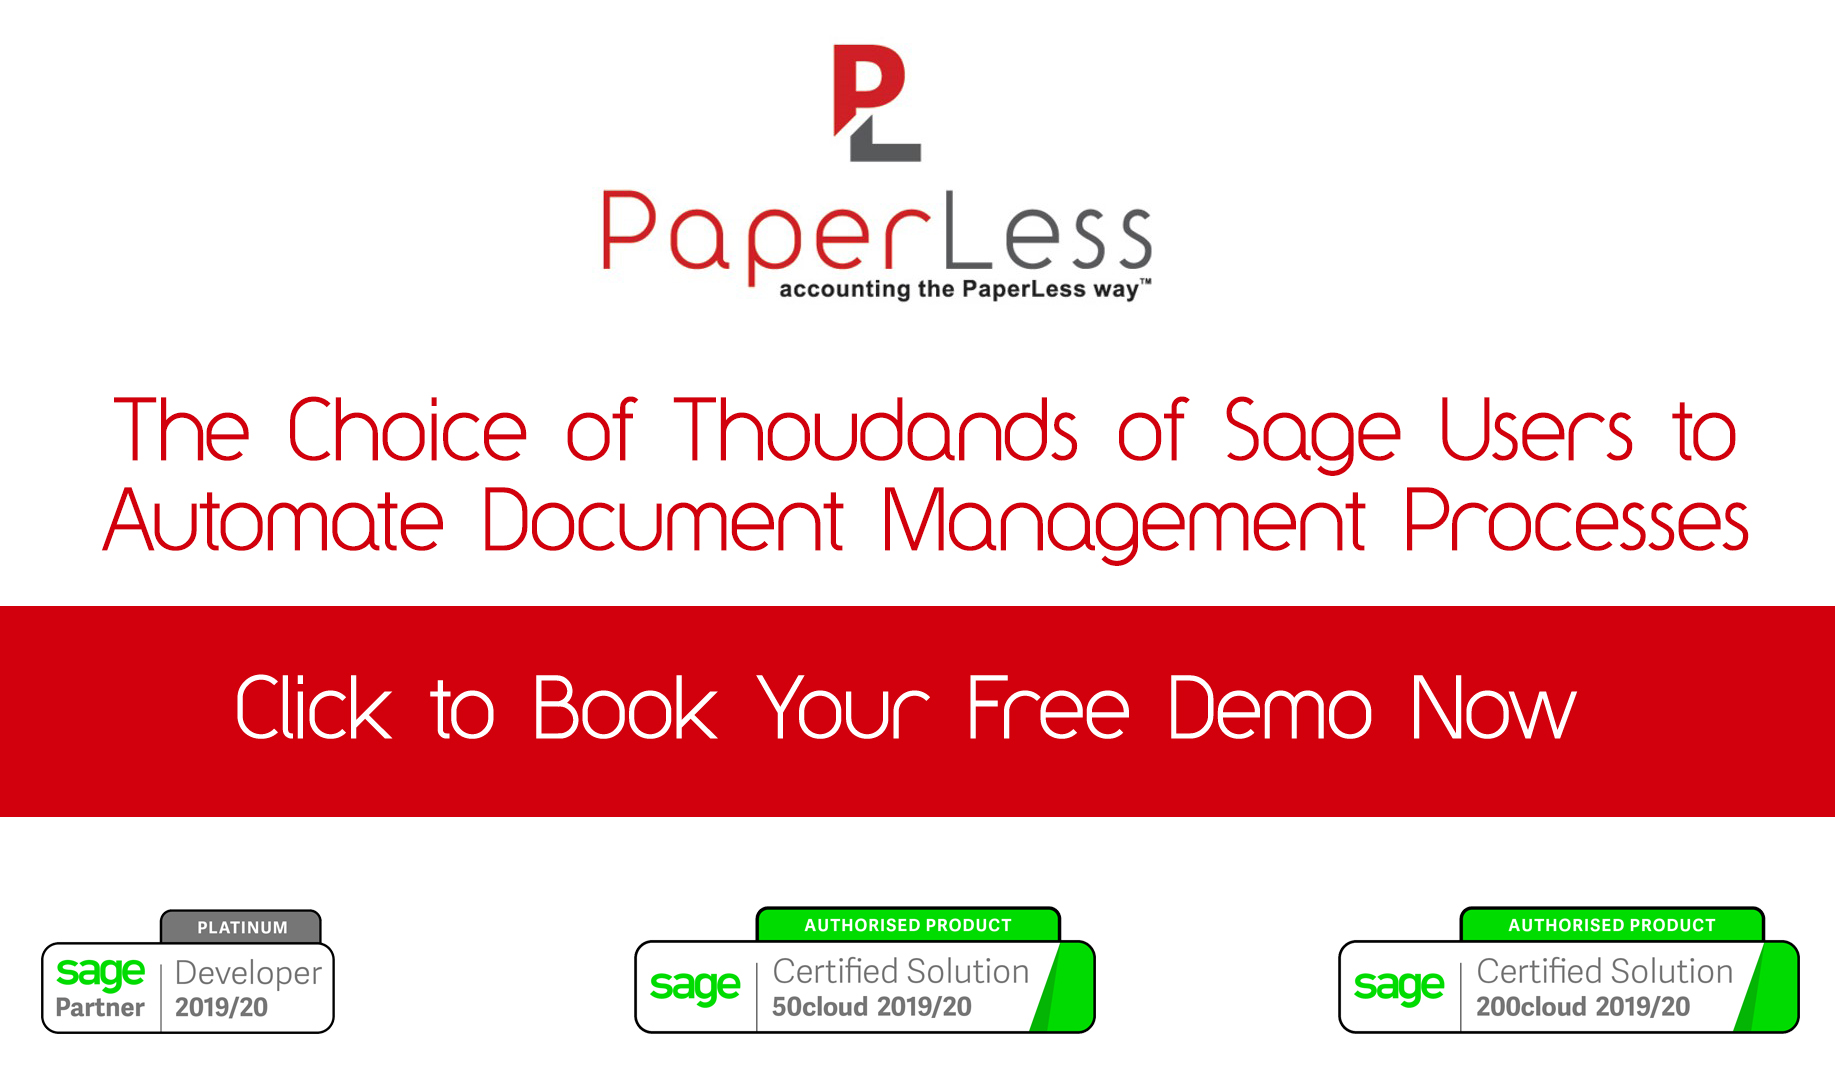 Click Here to Book Your Free Online Demo